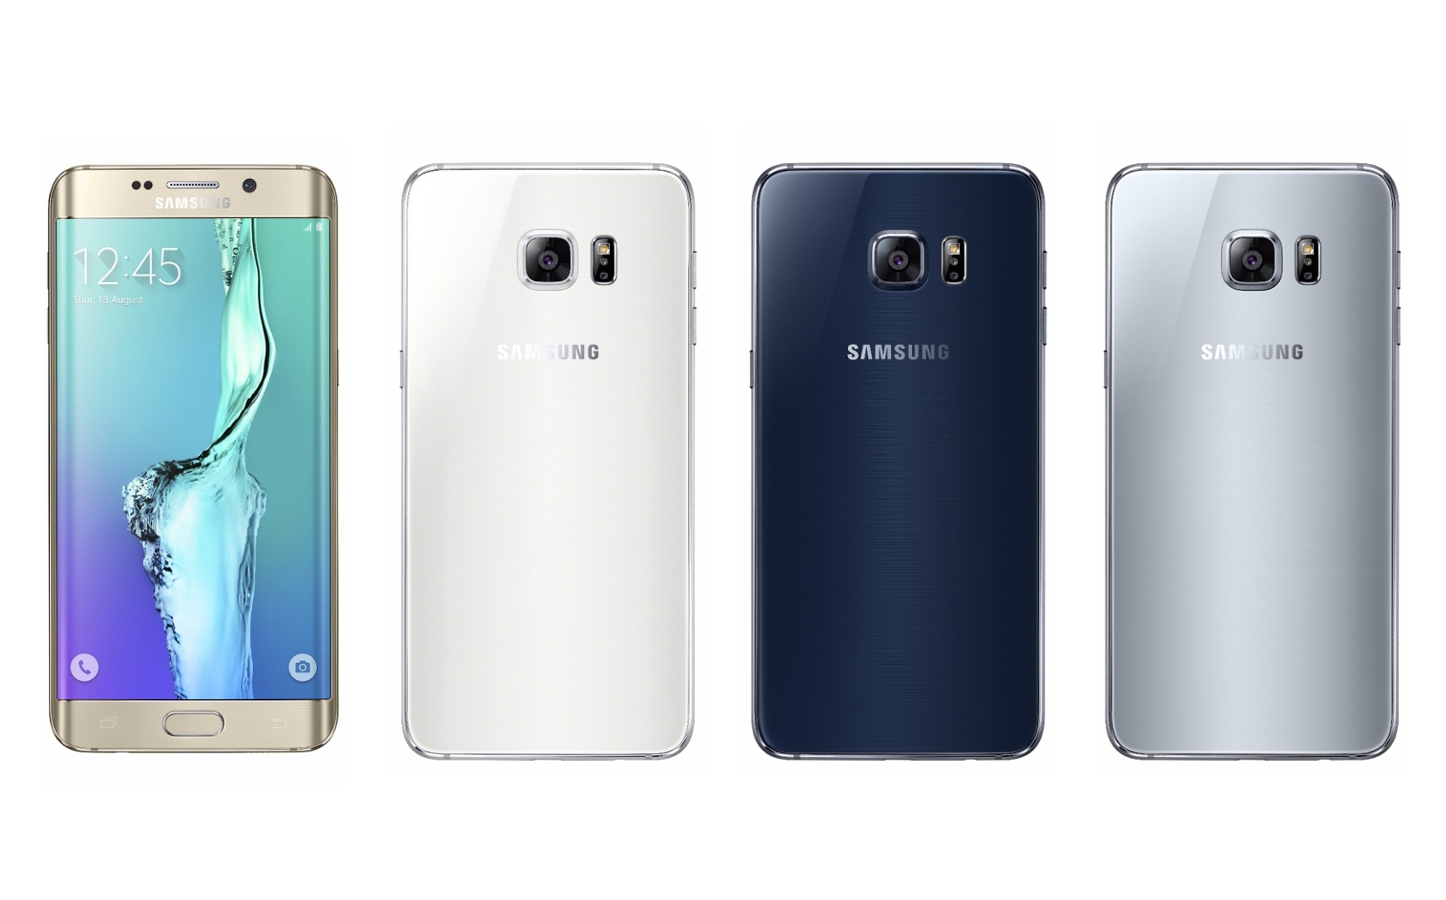 Samsung GalaxyS6 Edge Plus